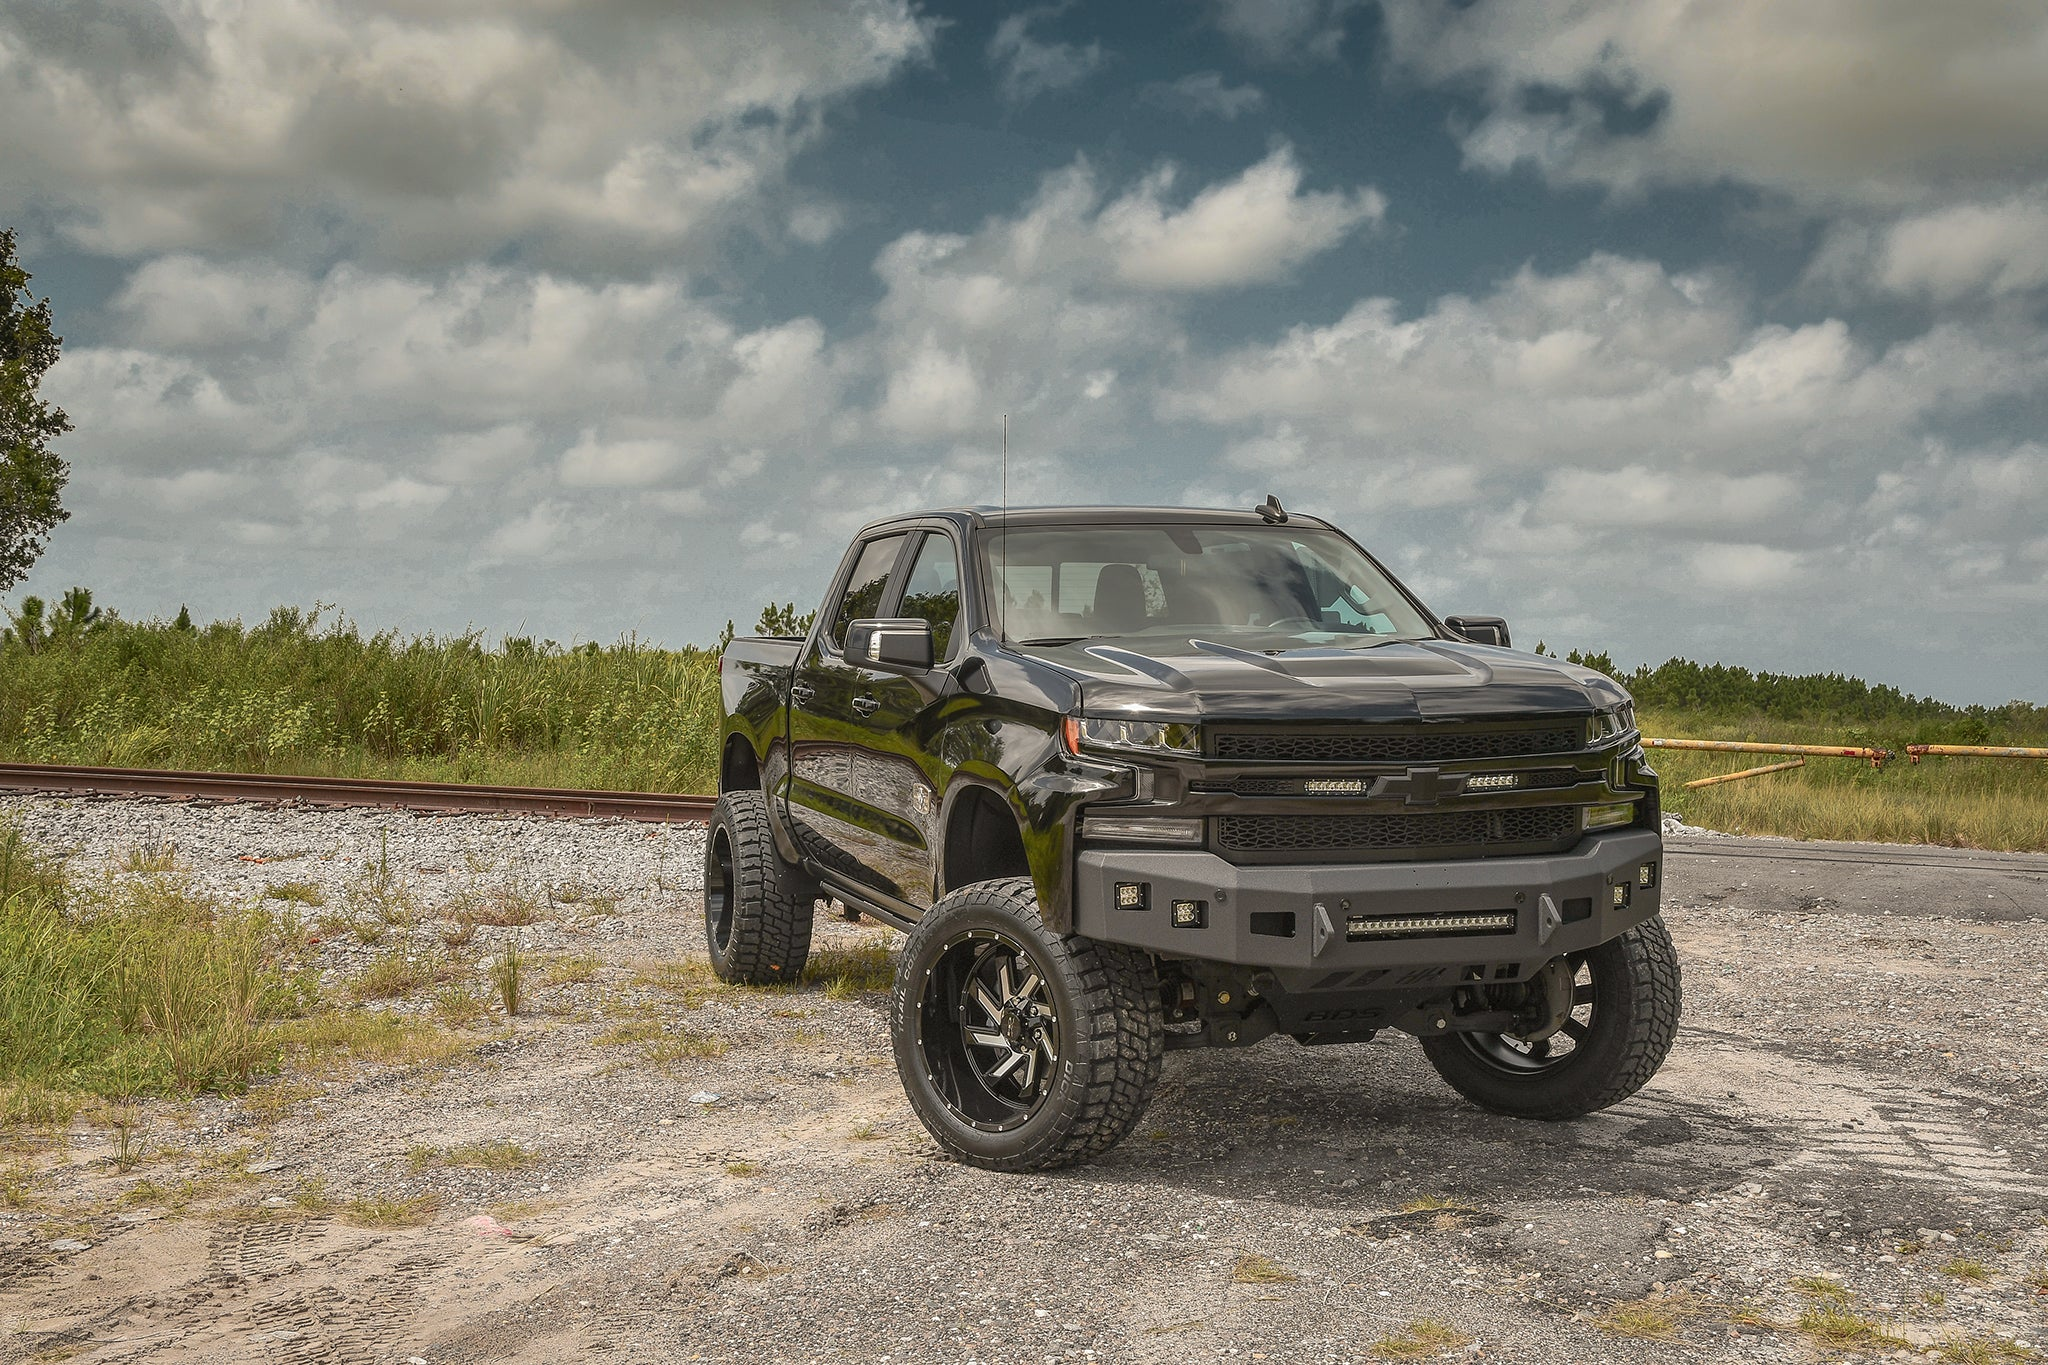 alt='2019 DEADWOOD EDITION SILVERADO (HAMMERHEAD PACKAGE) - LEVEL III on 22